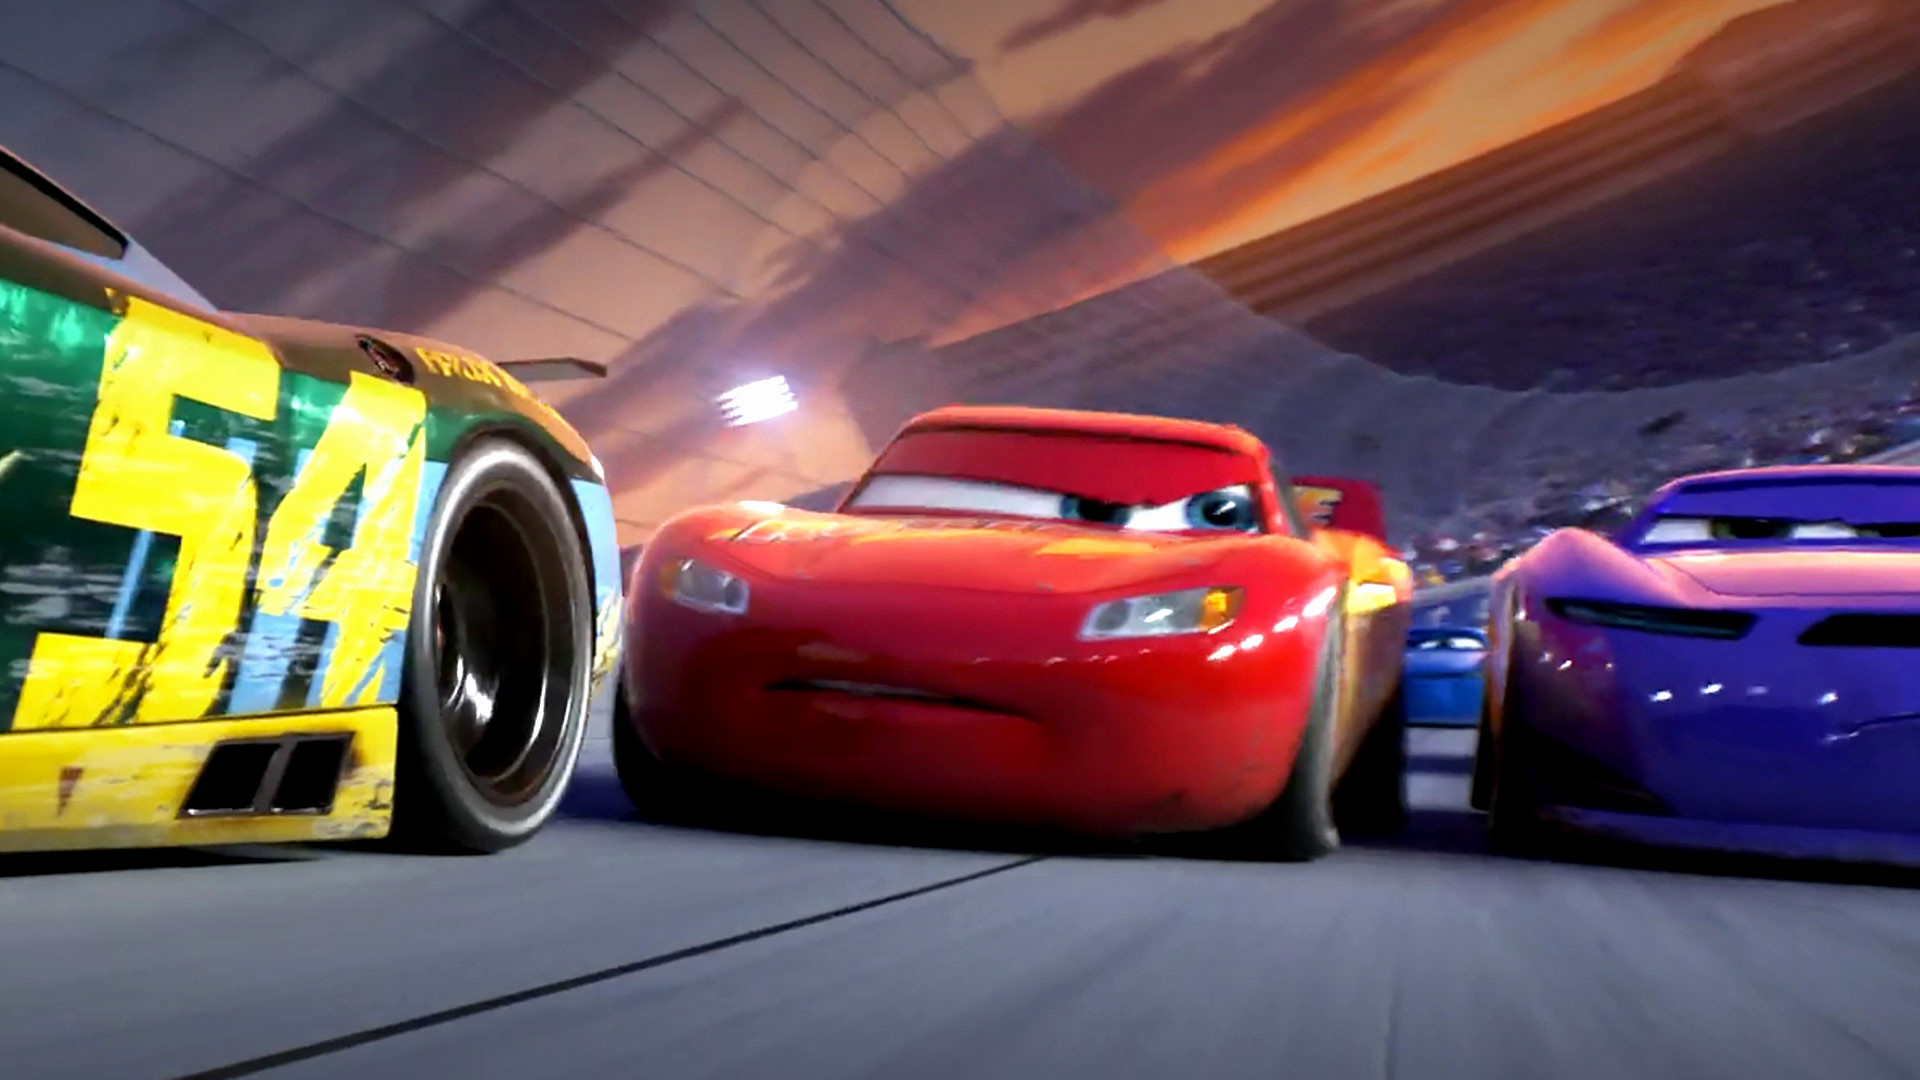 Wallpaper Fast Cars 65 Images